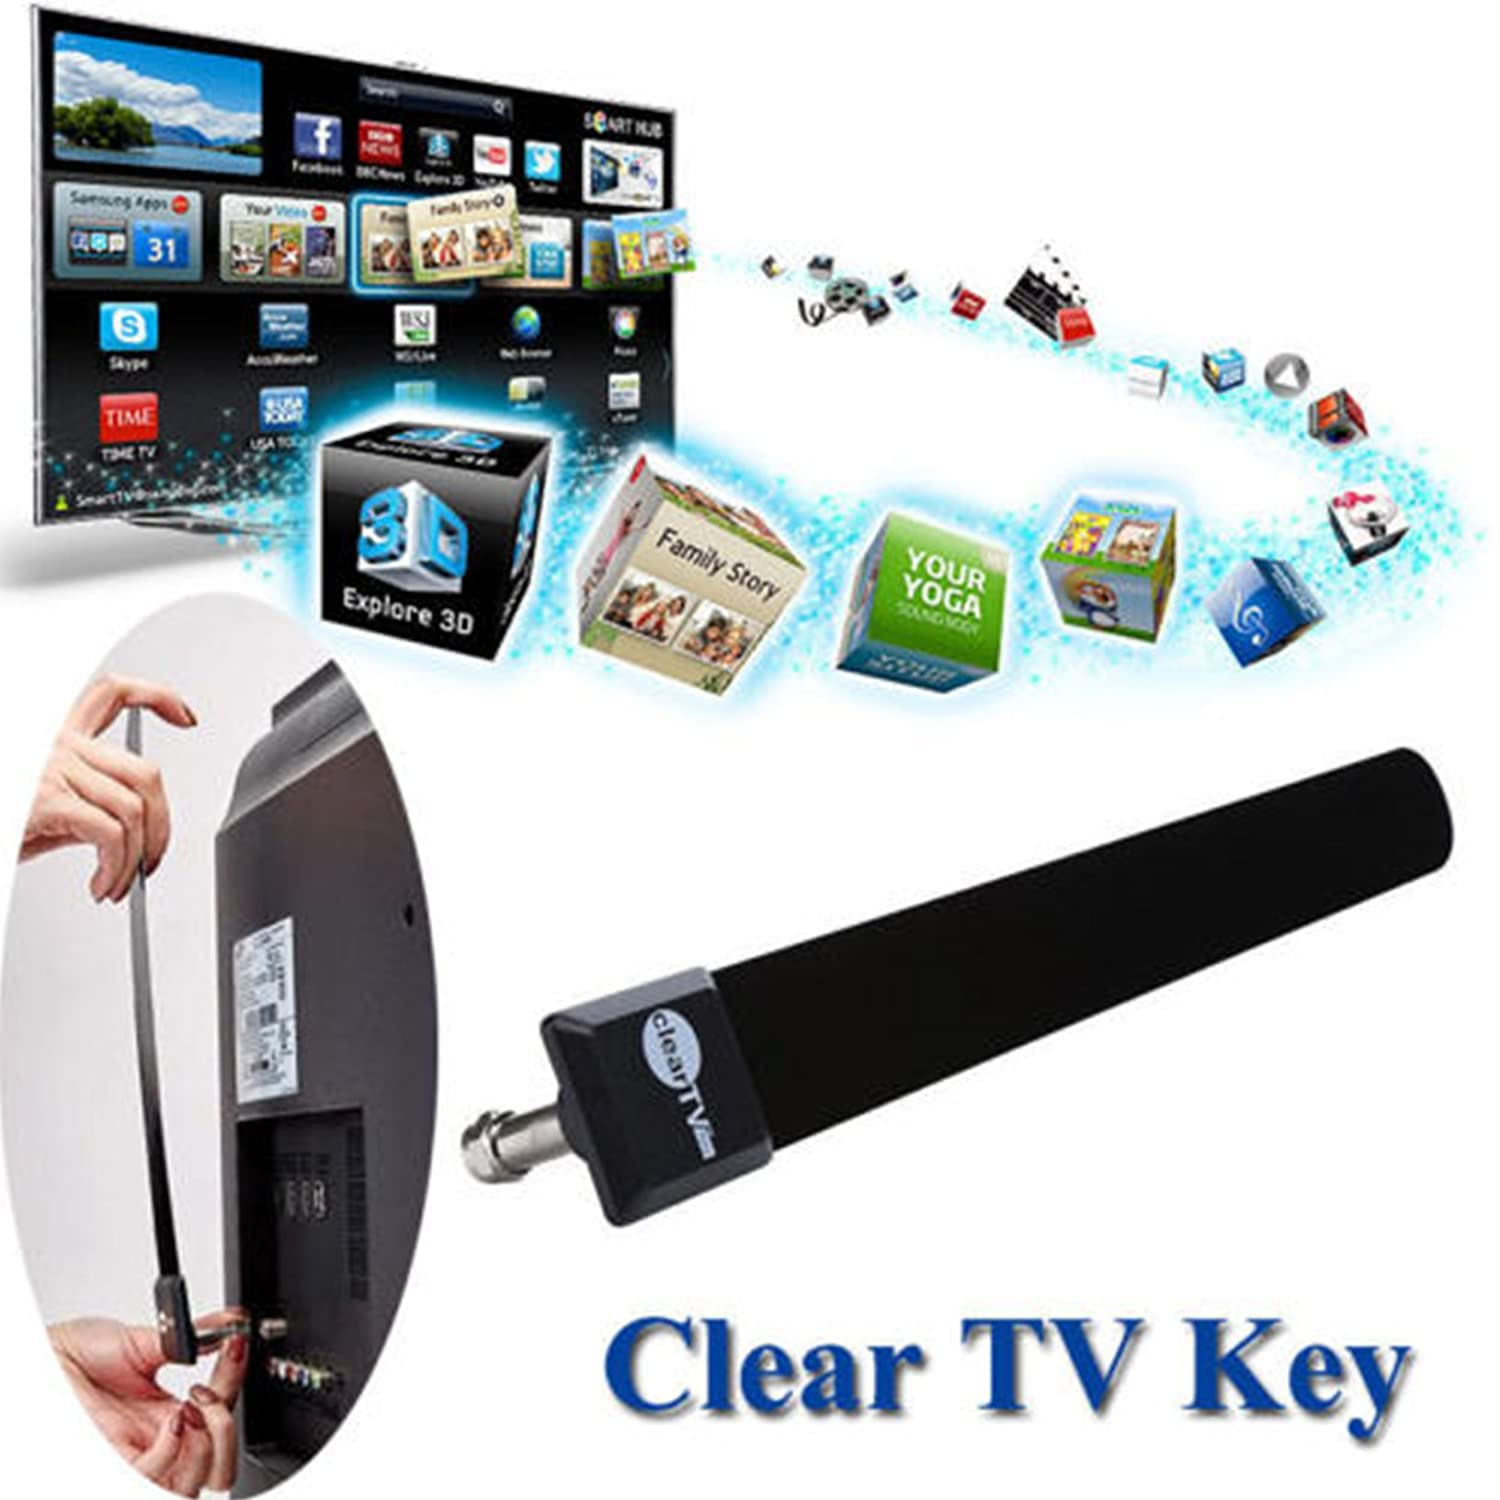 Toyofmine New Clear TV Key HDTV Free TV Digital Indoor Antenna Ditch Cable As Seen on TV